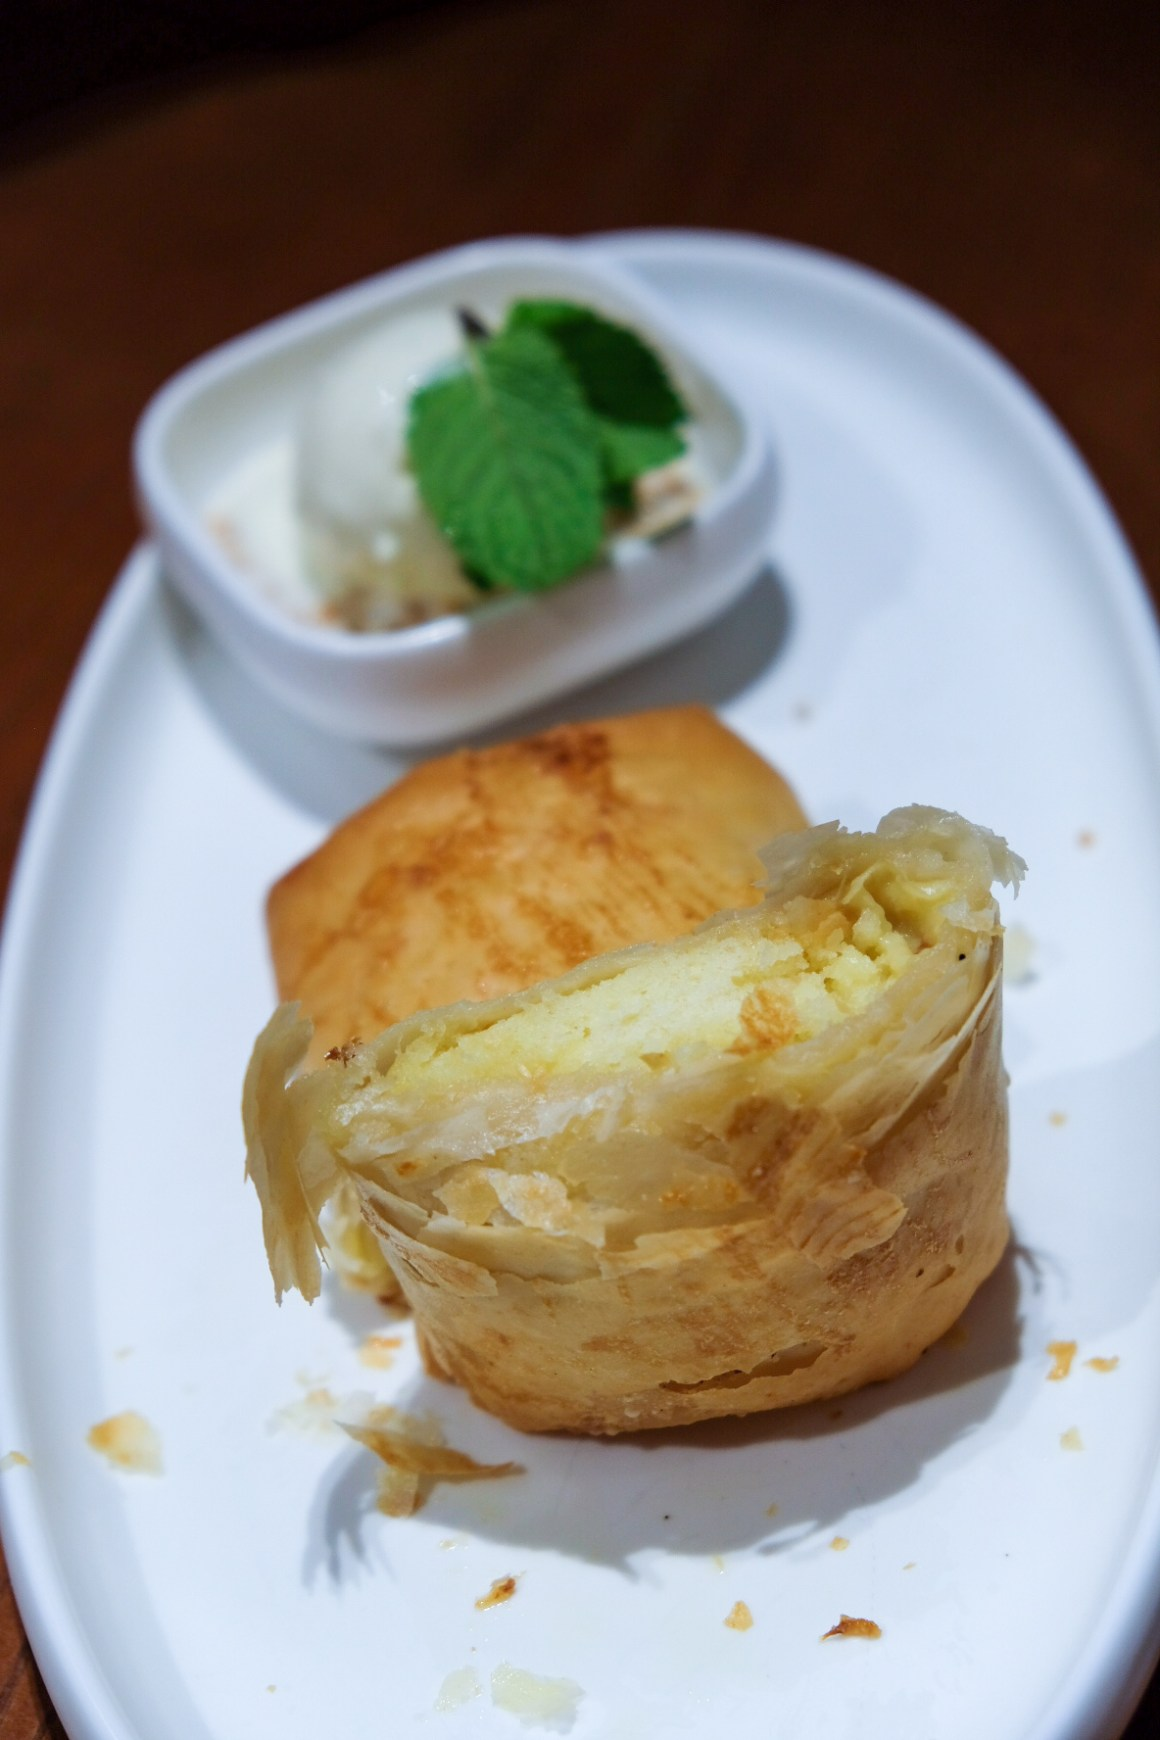 JÙN @ Capri By Fraser - Warm D24 Durian with Filo Pastry